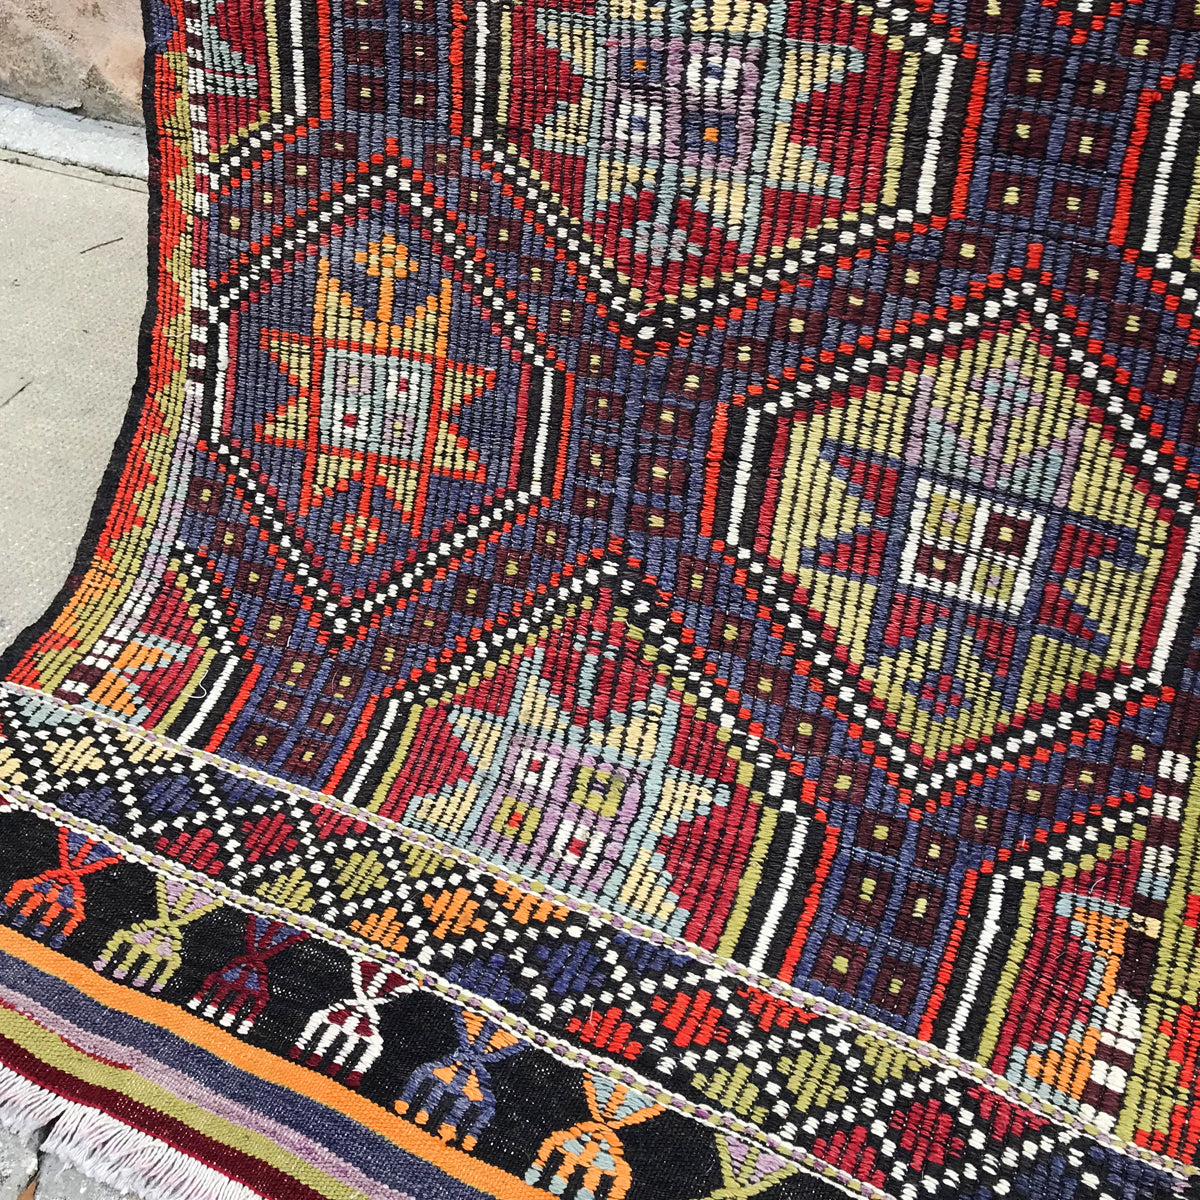 This Cicim handwoven vintage Turkish rug has amazing colors and pattern on a black background.  Cicim rugs have embroidery used in their technique. Great colors, design and history. 32 x 48 inches.